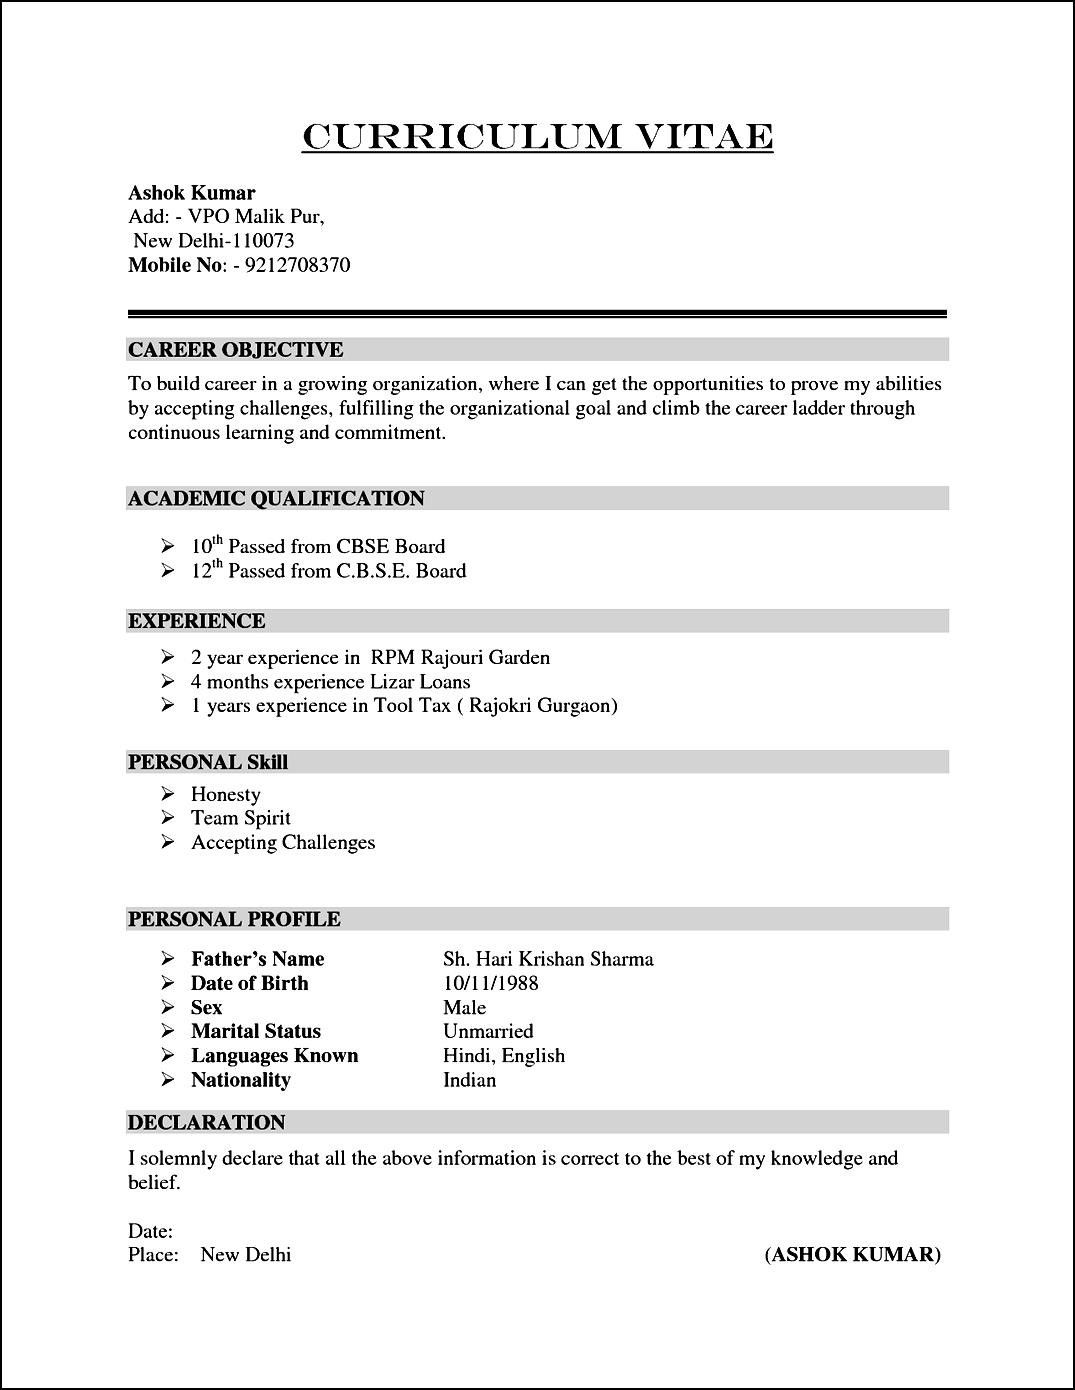 Templates For Curriculum Vitae Samplecurriculumvitaeresumeforcareerobjectivewithacademic